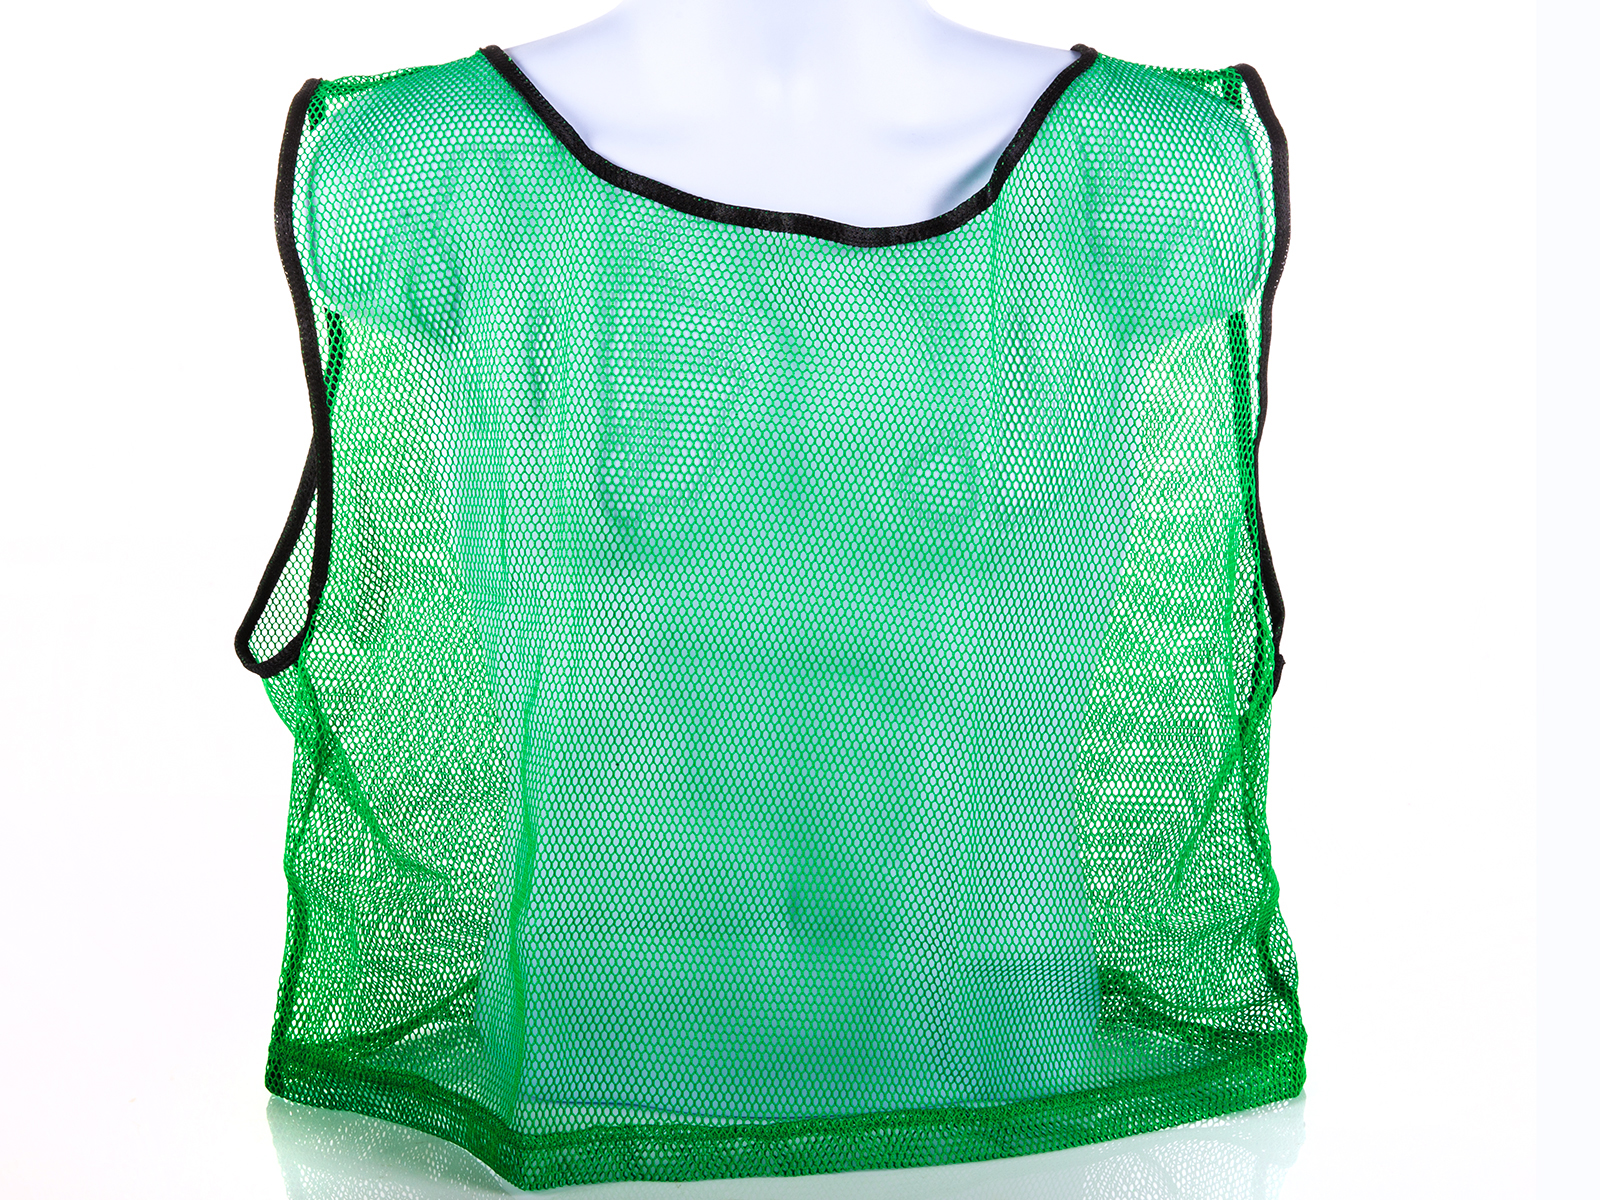 RelaxFit Champion Mesh Vest - Large, Green